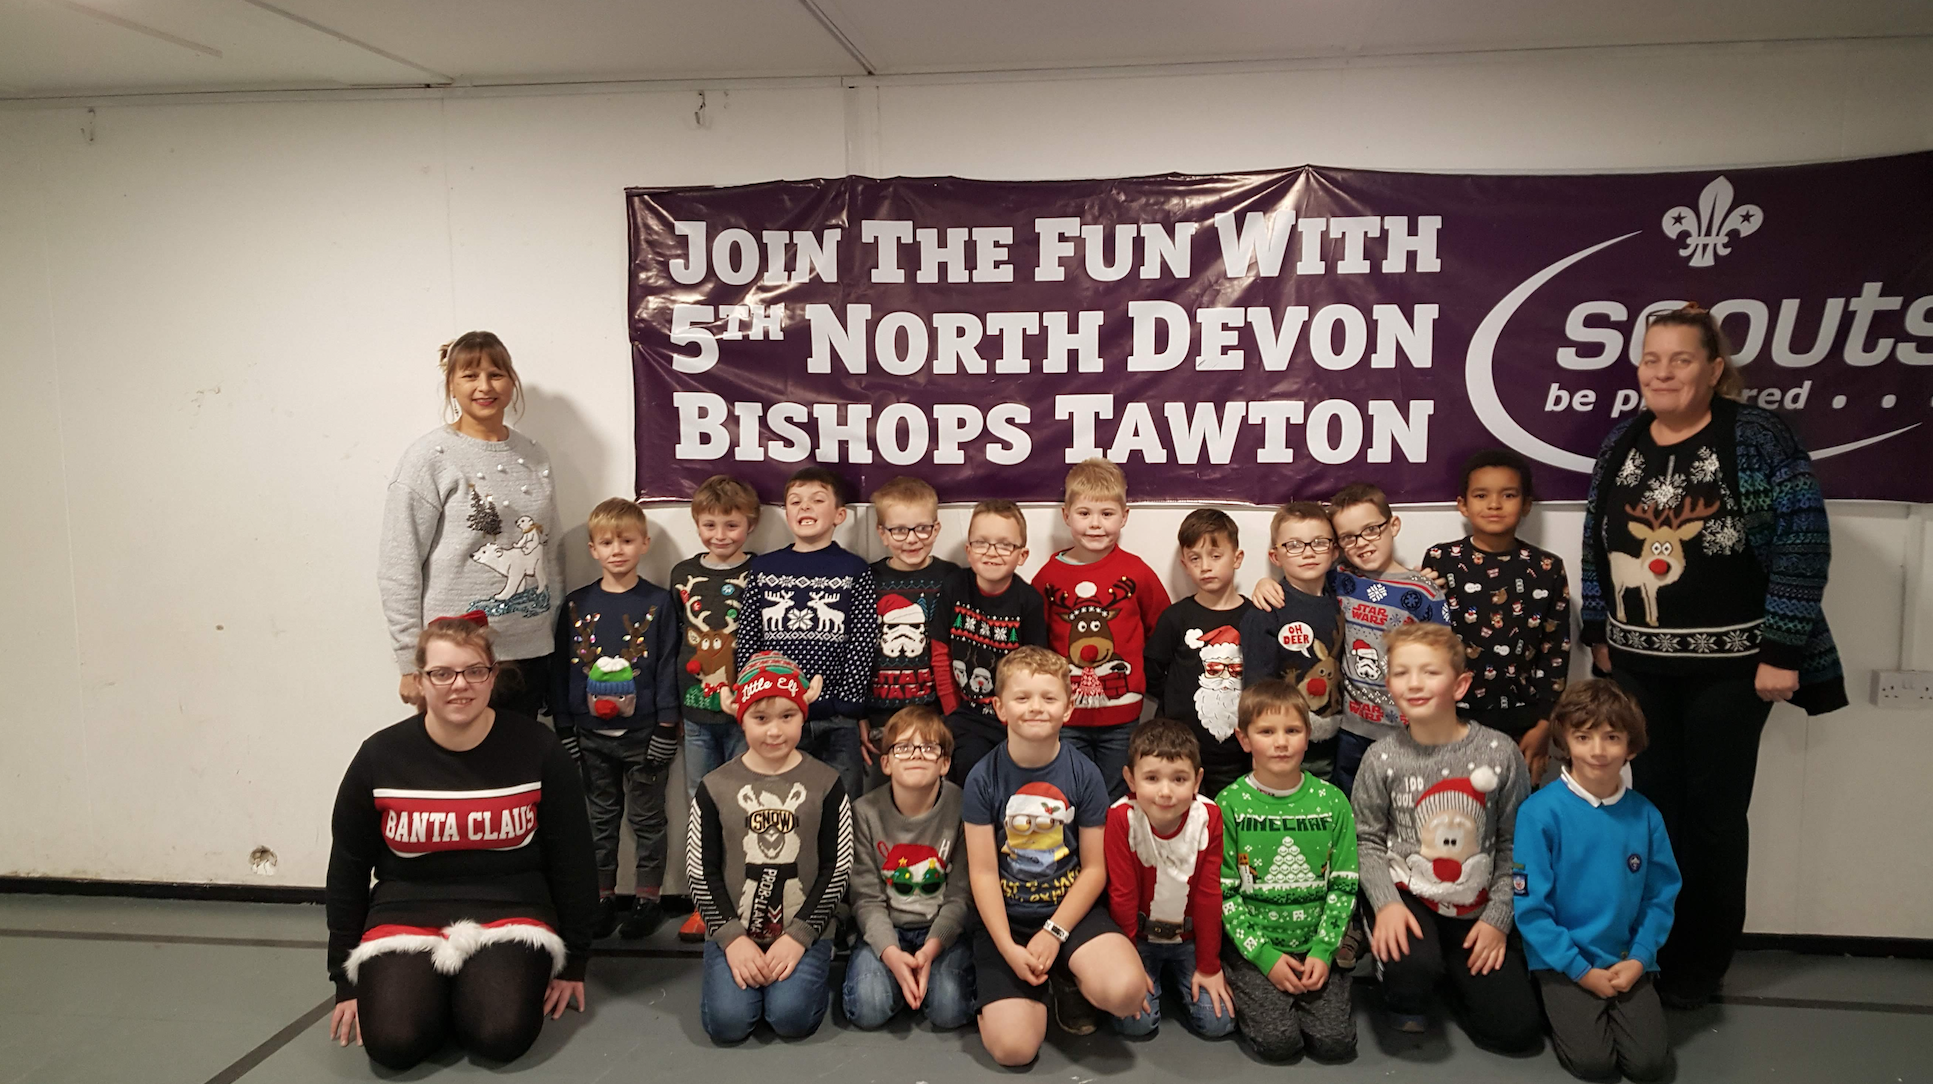 Our Beavers enjoyed a session of festive-fun wearing their Christmas jumpers and savoring lots of healthy and delicious snacks. They played old fashioned games and did some crazy dancing before their party snacks and drinks. The Beavers & Leaders all looked great in their jumpers ranging from Rudolph, Snowmen, Cute Polar Bears and Santa to […]